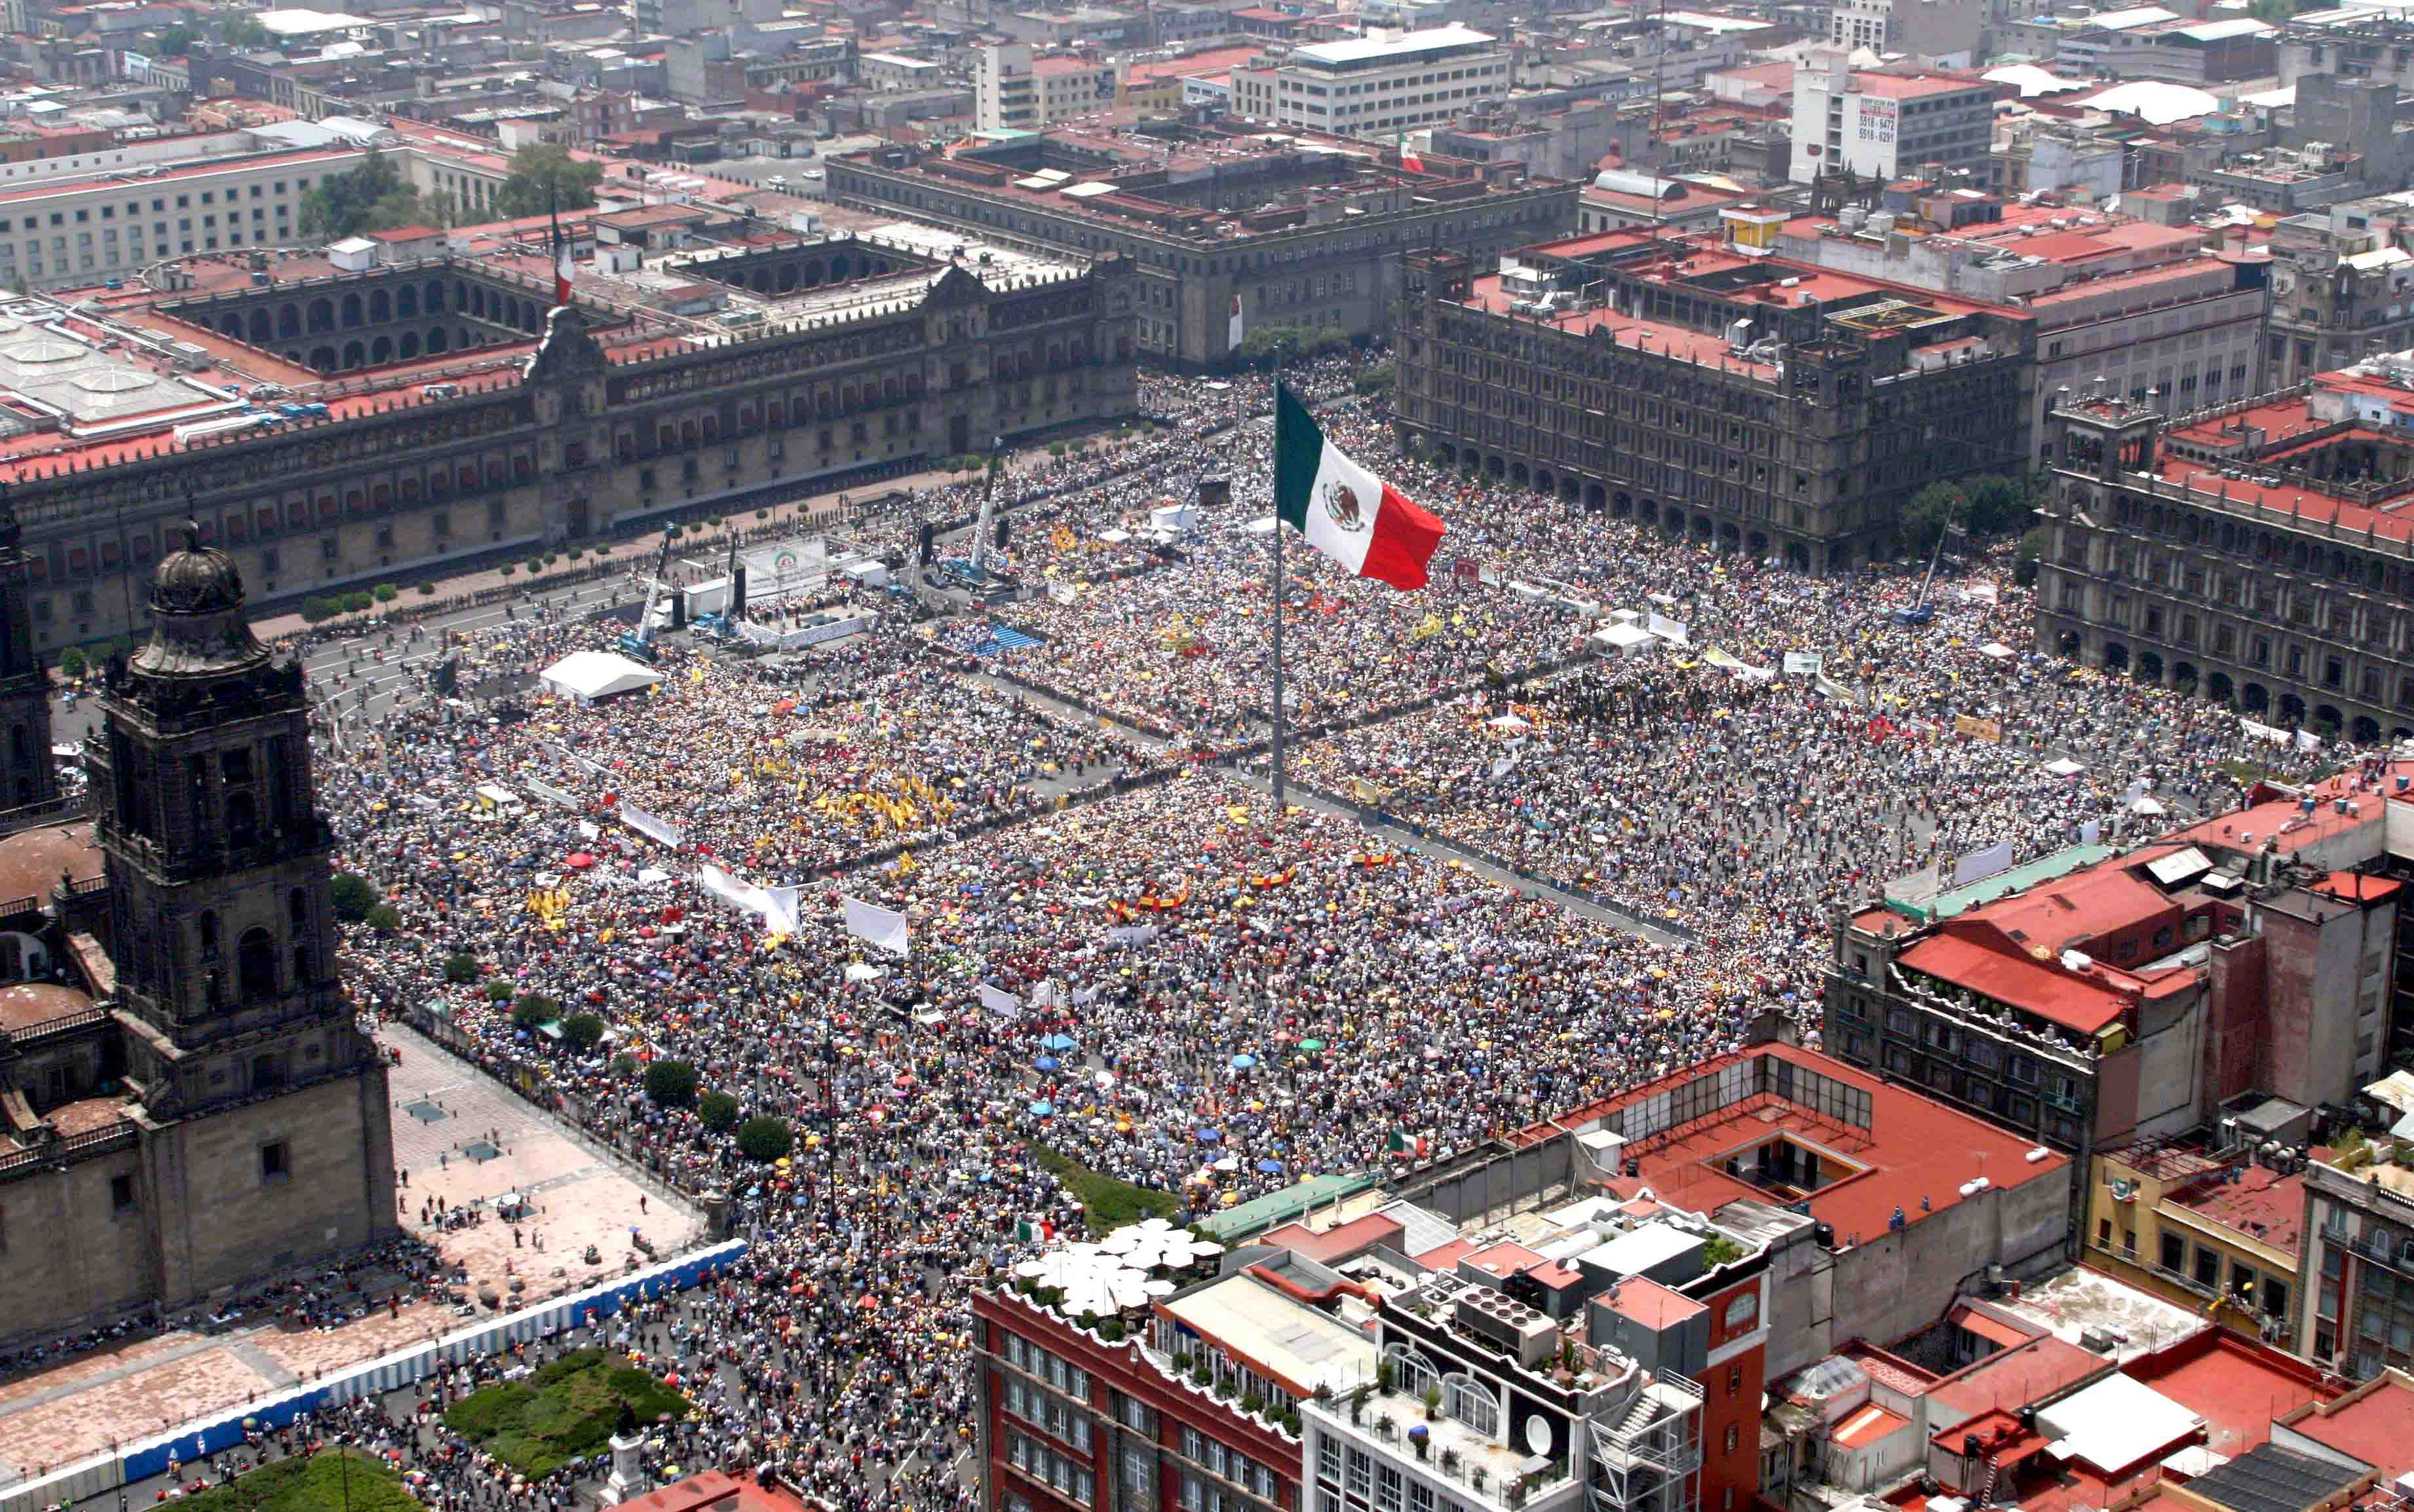 Zocalo in Mexico full of people